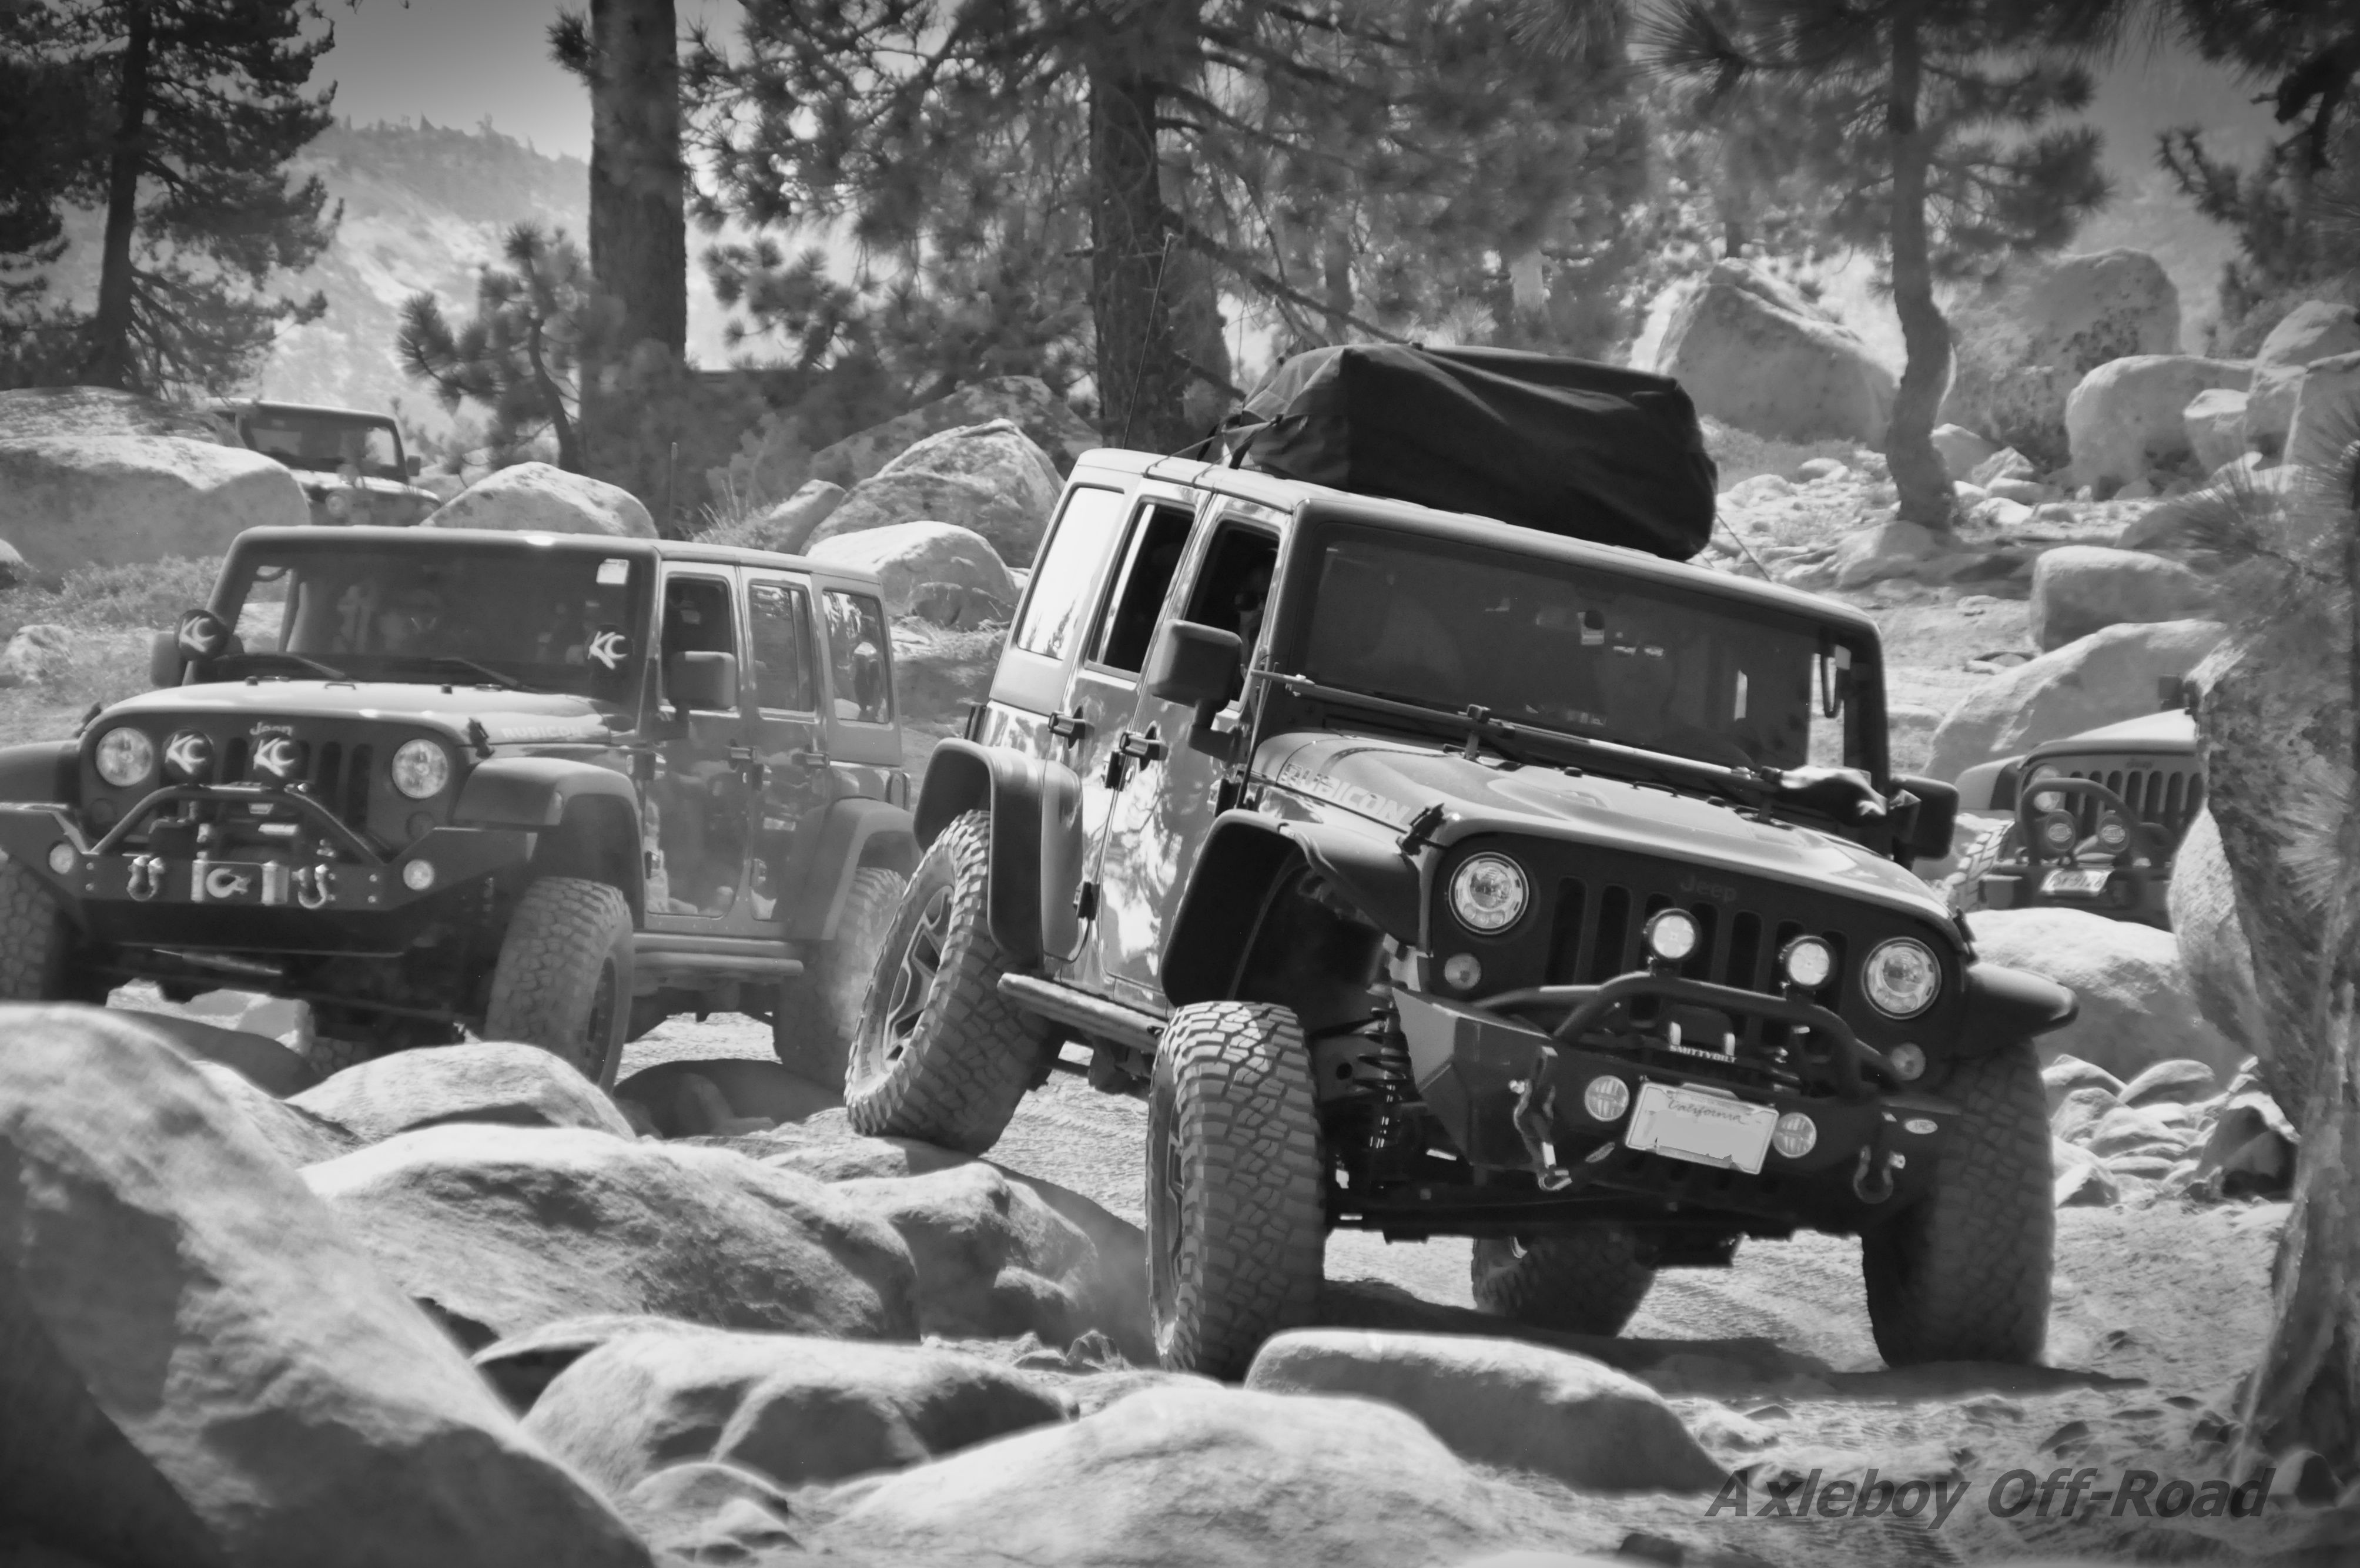 Jeep Wranglers Rolling Down The Rubicon Trail Axleboy Offroad